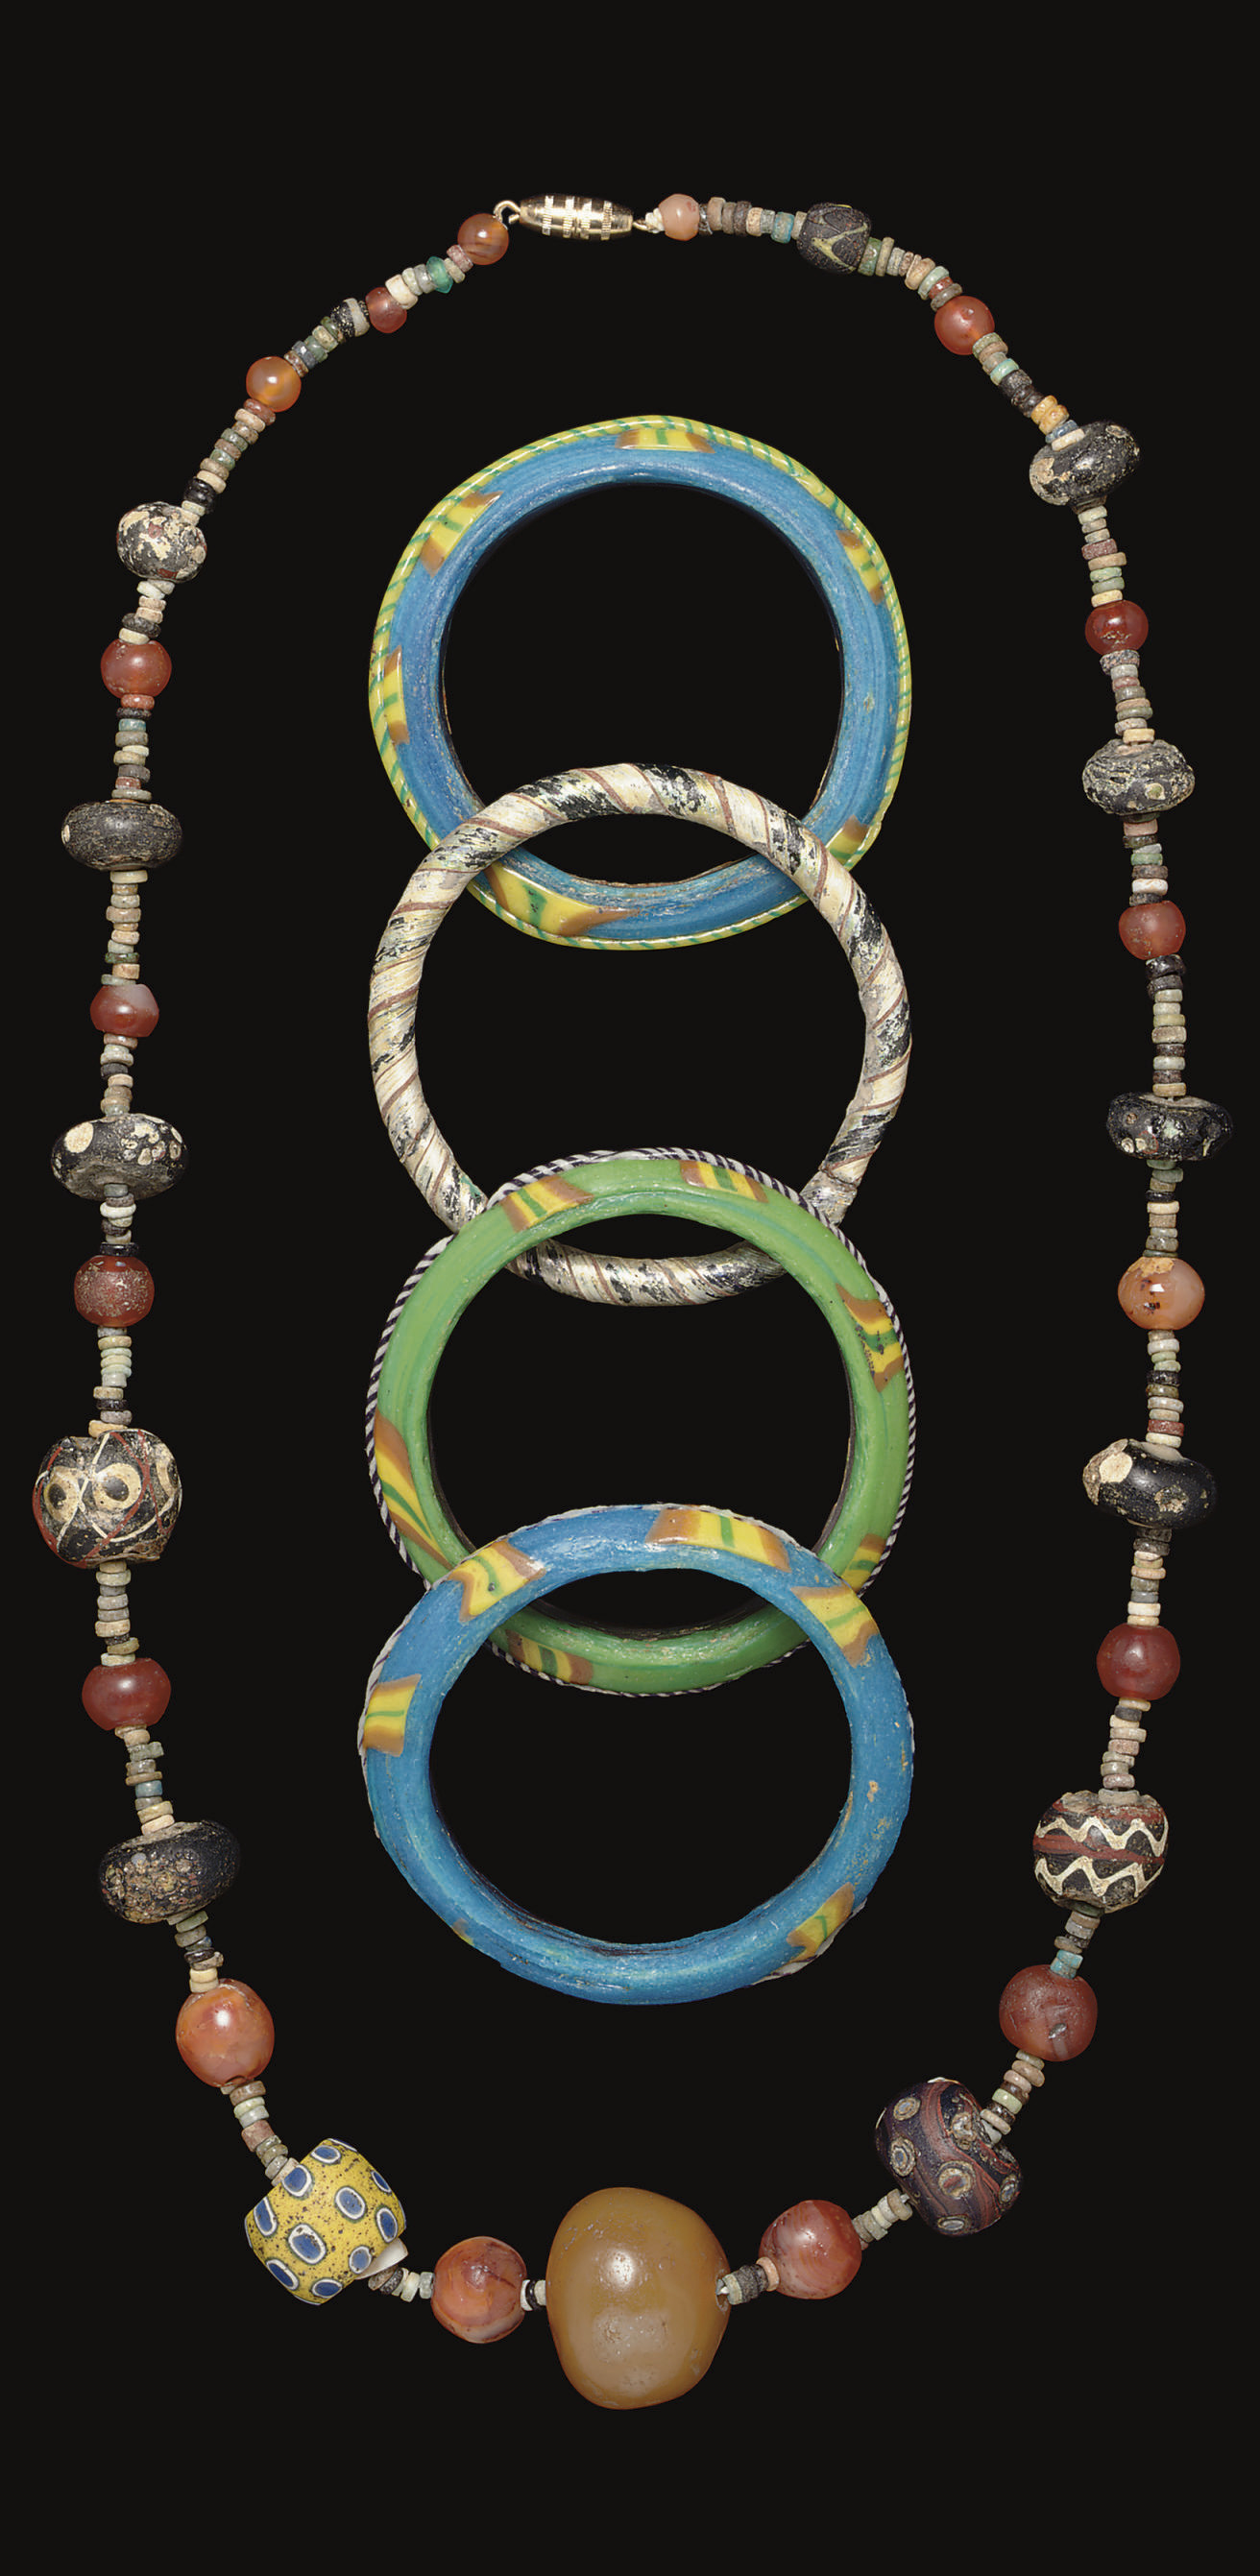 AN ANCIENT GLASS BEAD NECKLACE